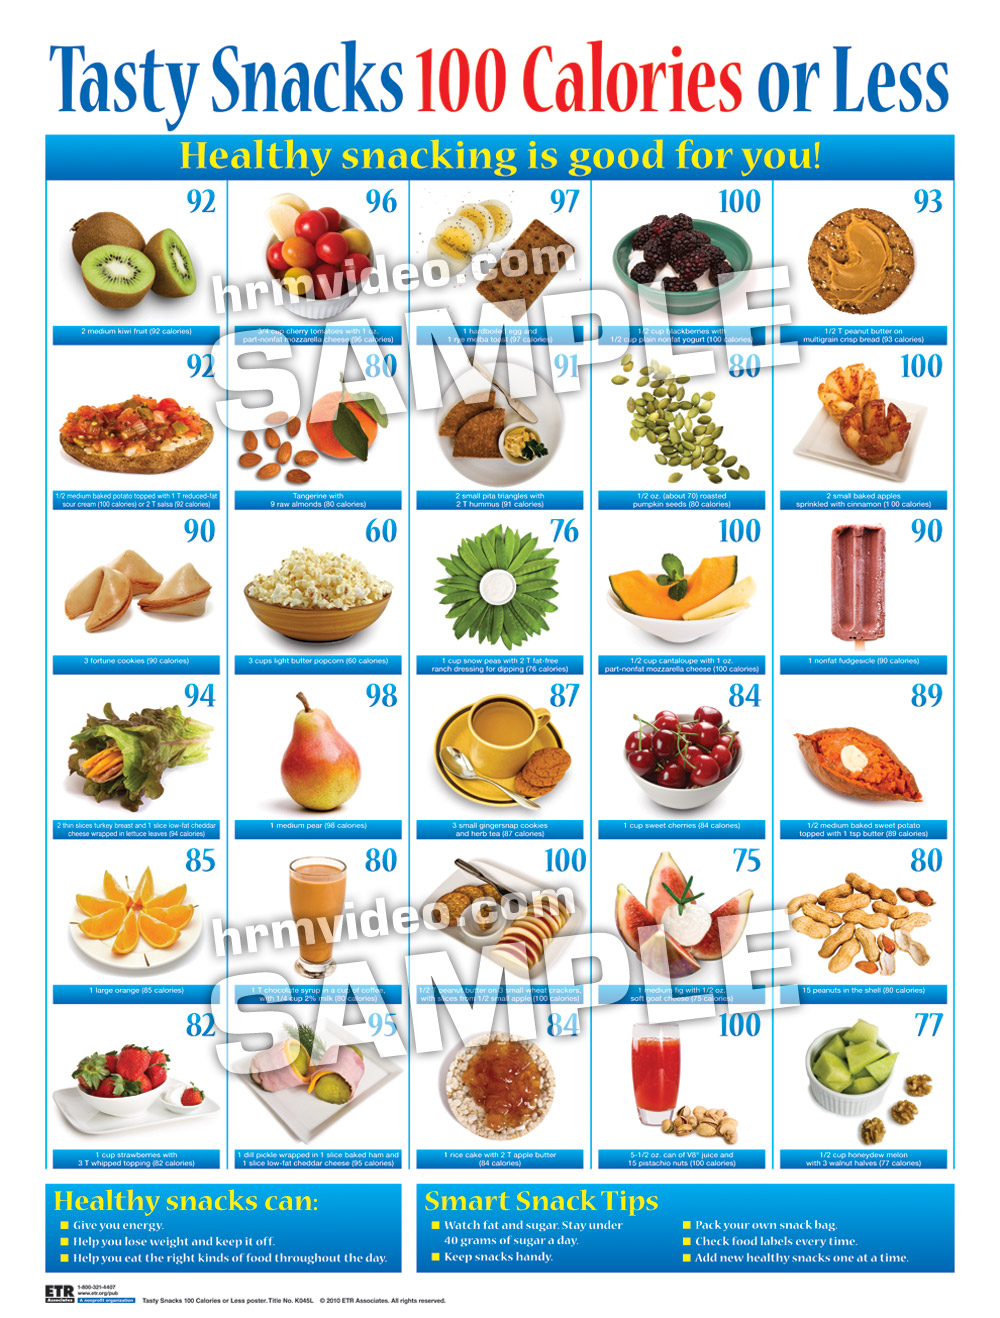 Healthy But Tasty Snacks Tasty Snacks 100 Calories or